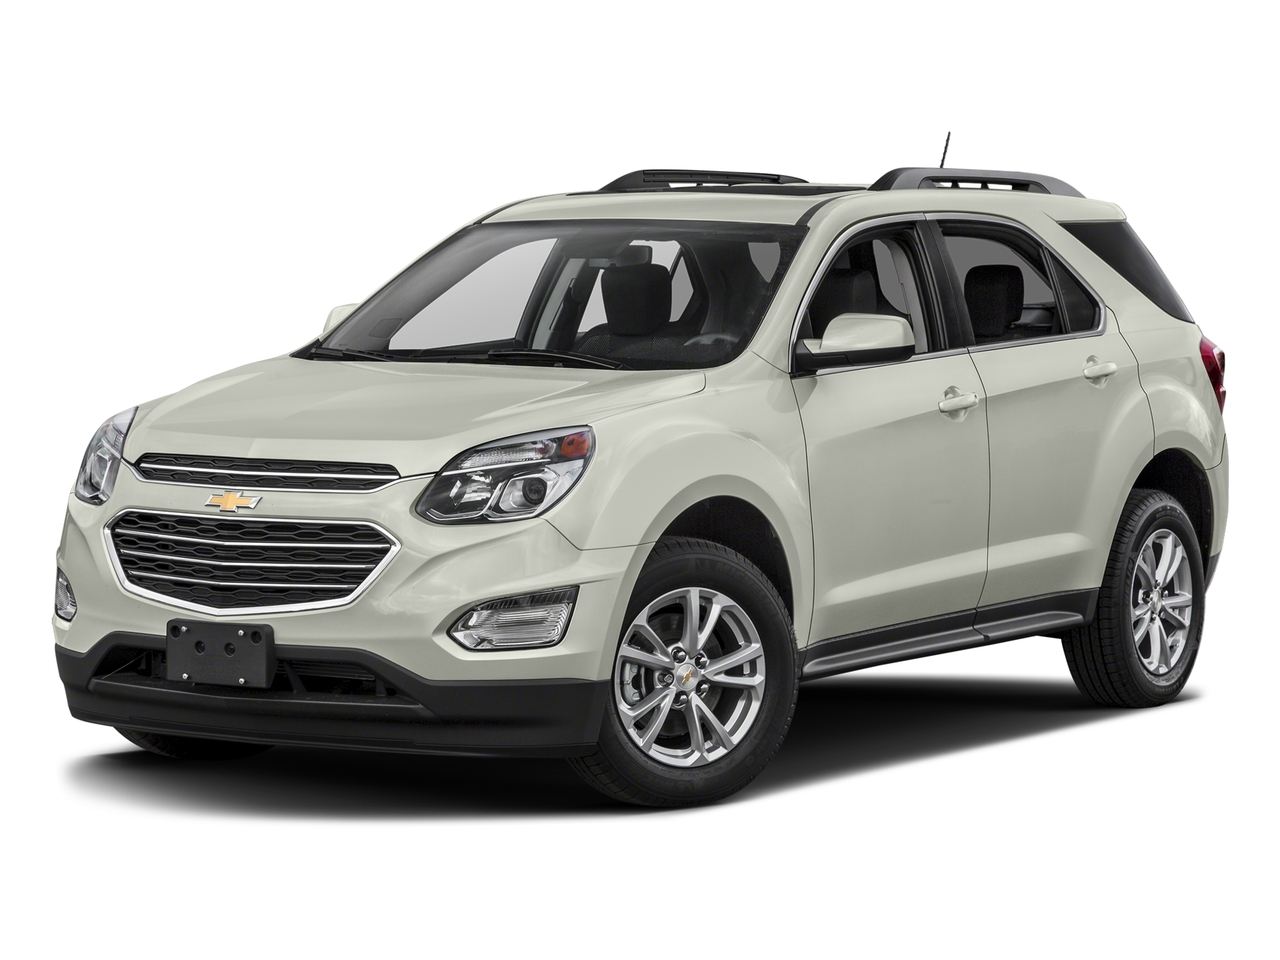 Pearl White 2017 Chevrolet Equinox LT SUV Wake Forest NC